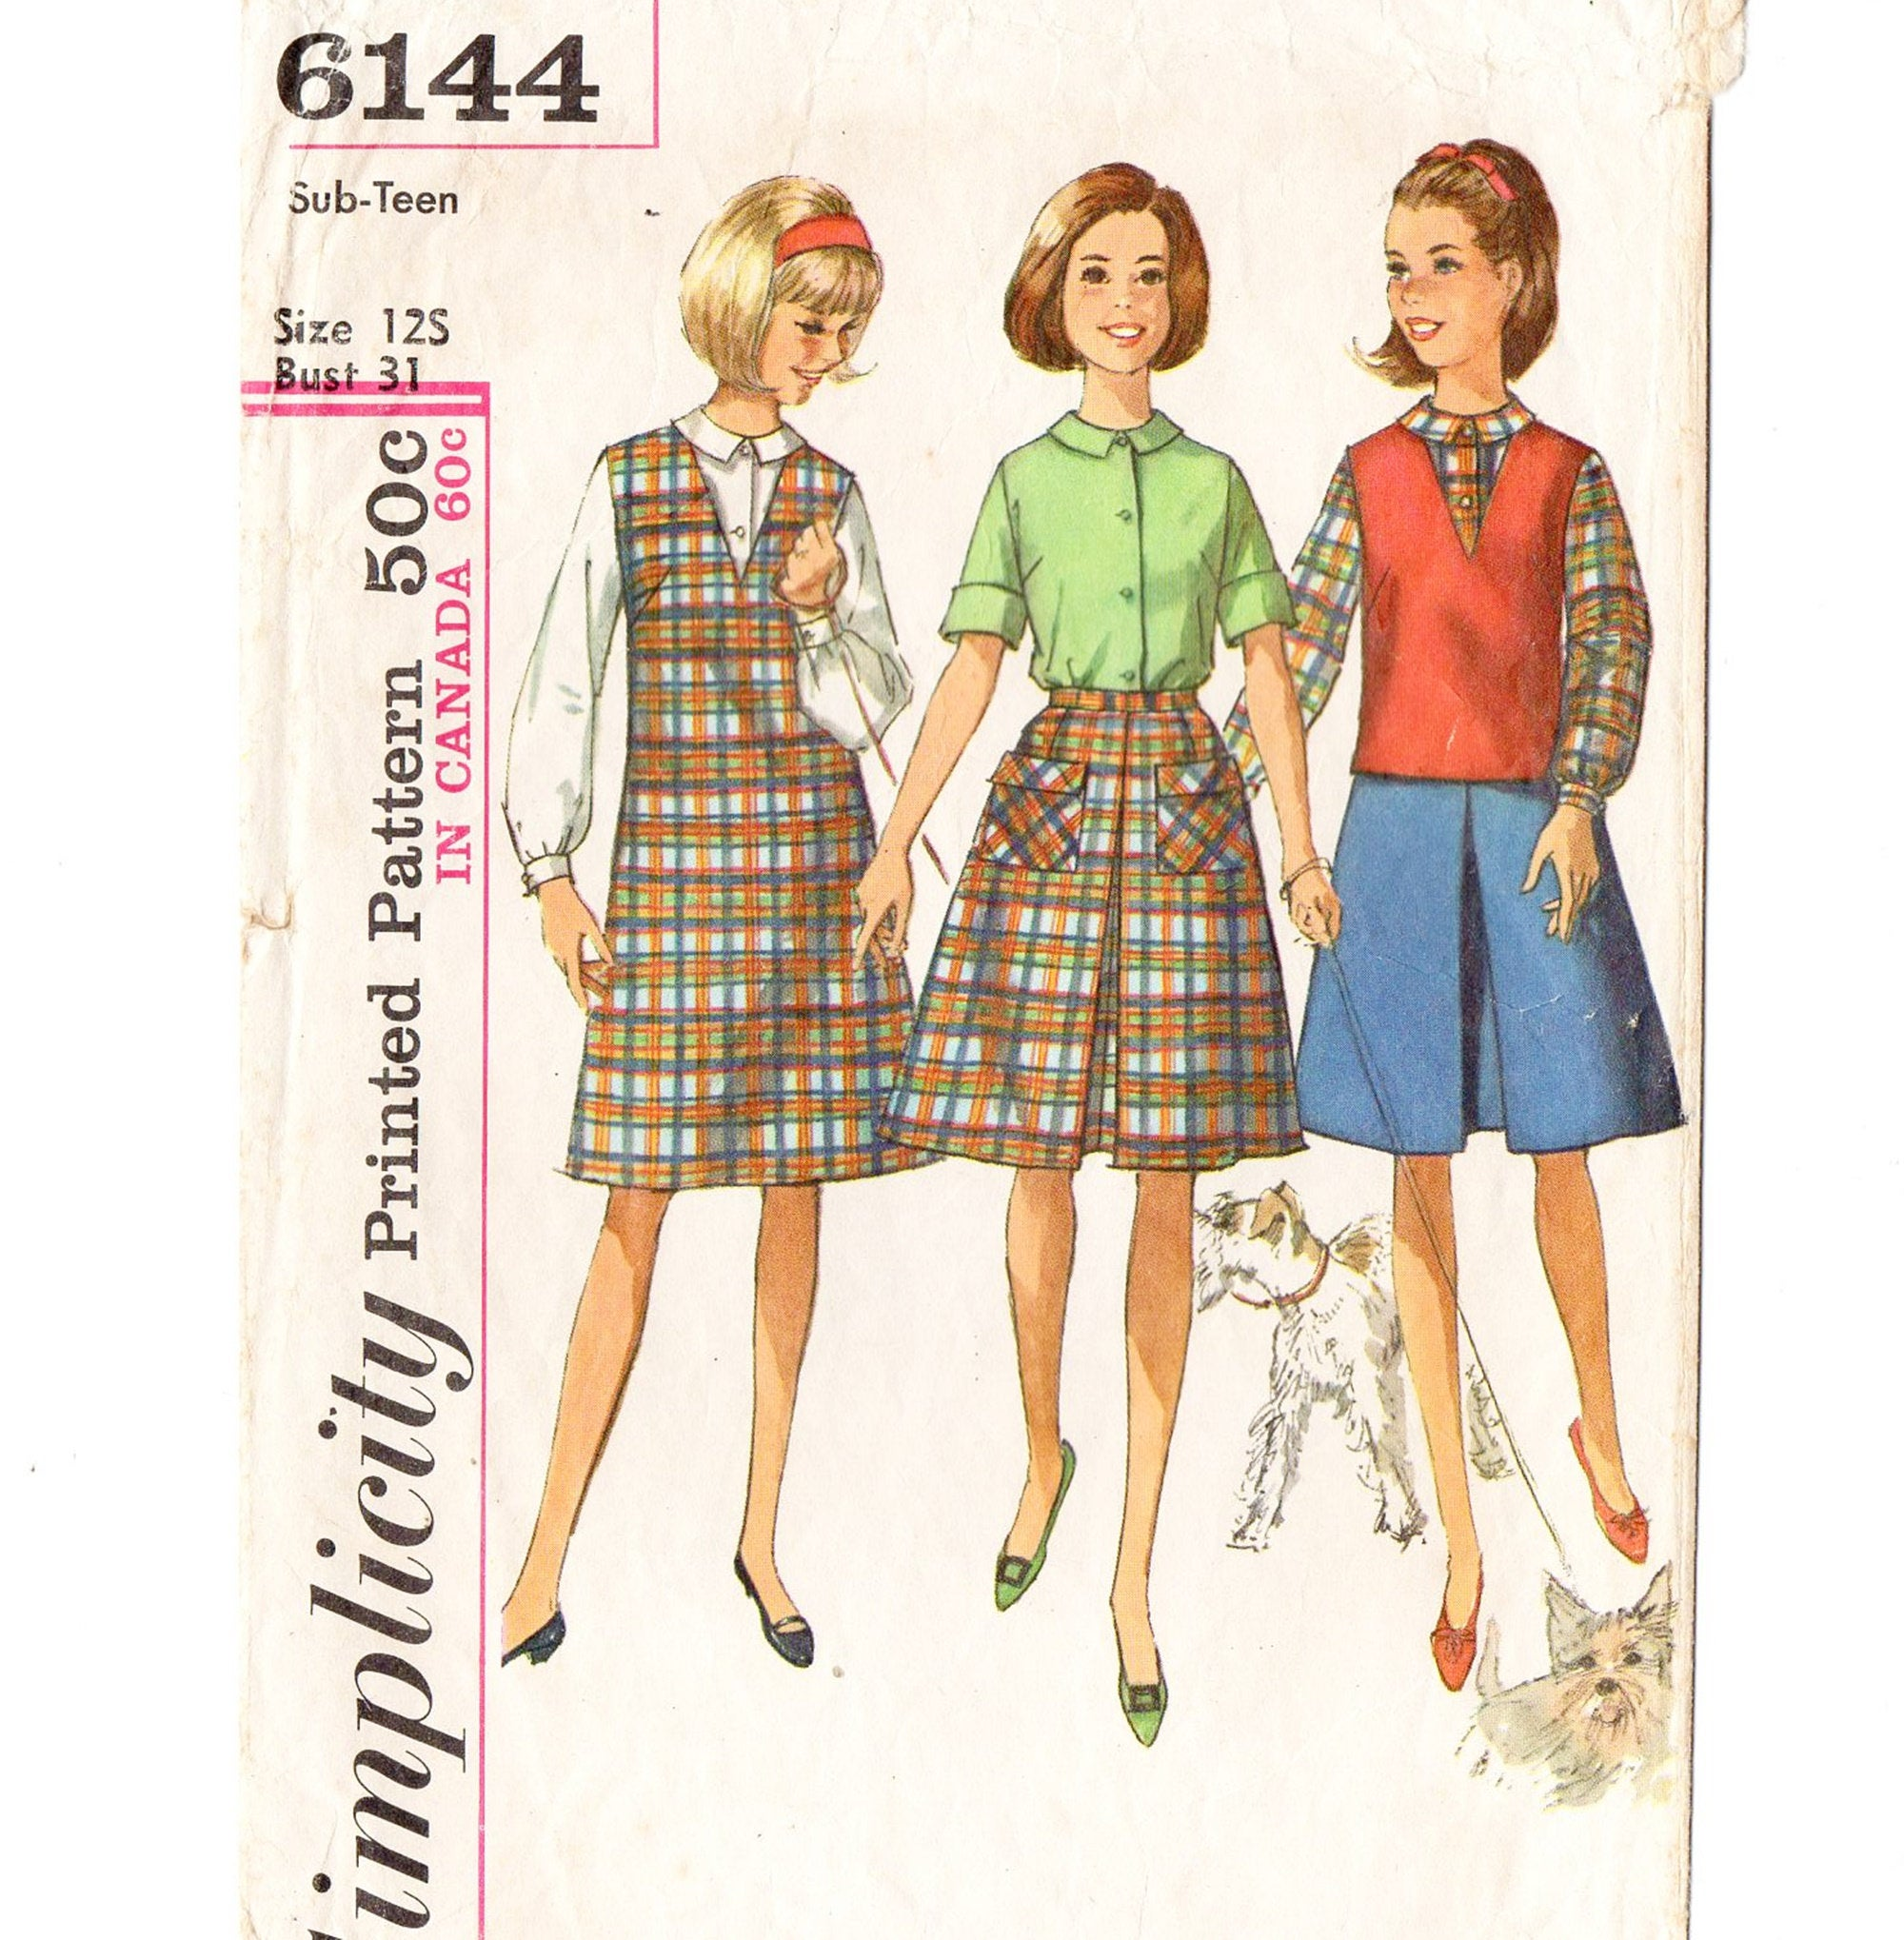 Simplicity 6144 Teen Girl Jumper, Skirt, Blouse 60s Vintage Sewing Pattern Size